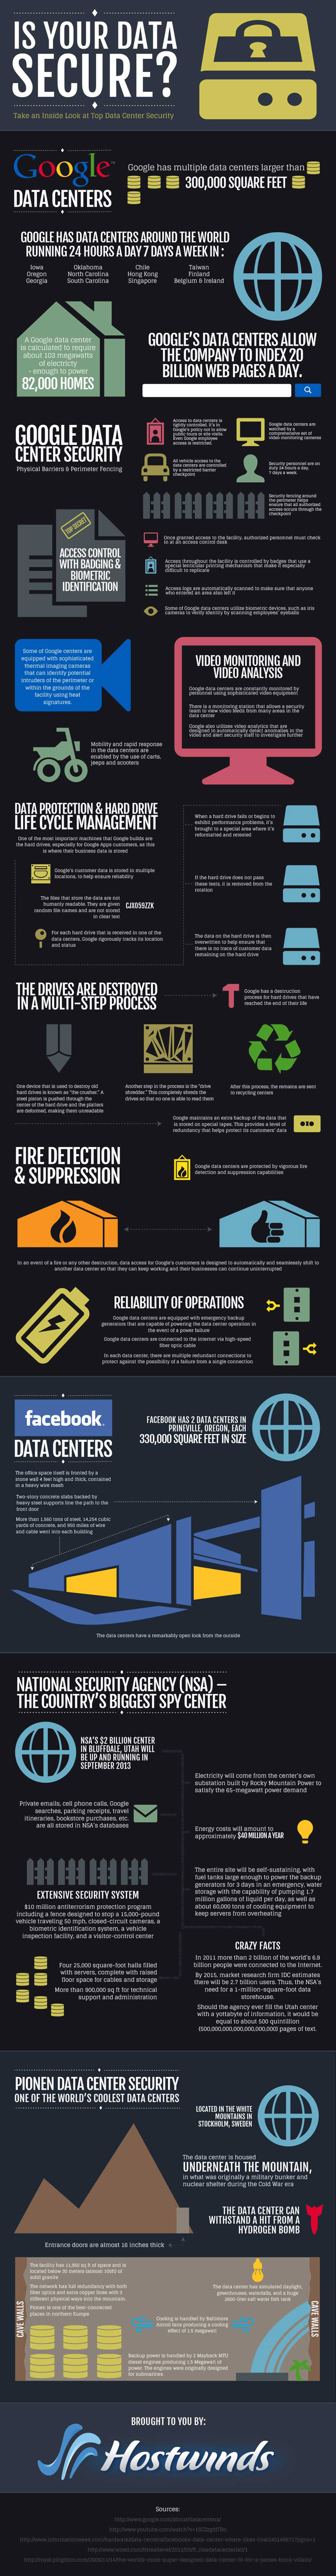 Is your data secure?  Infographic